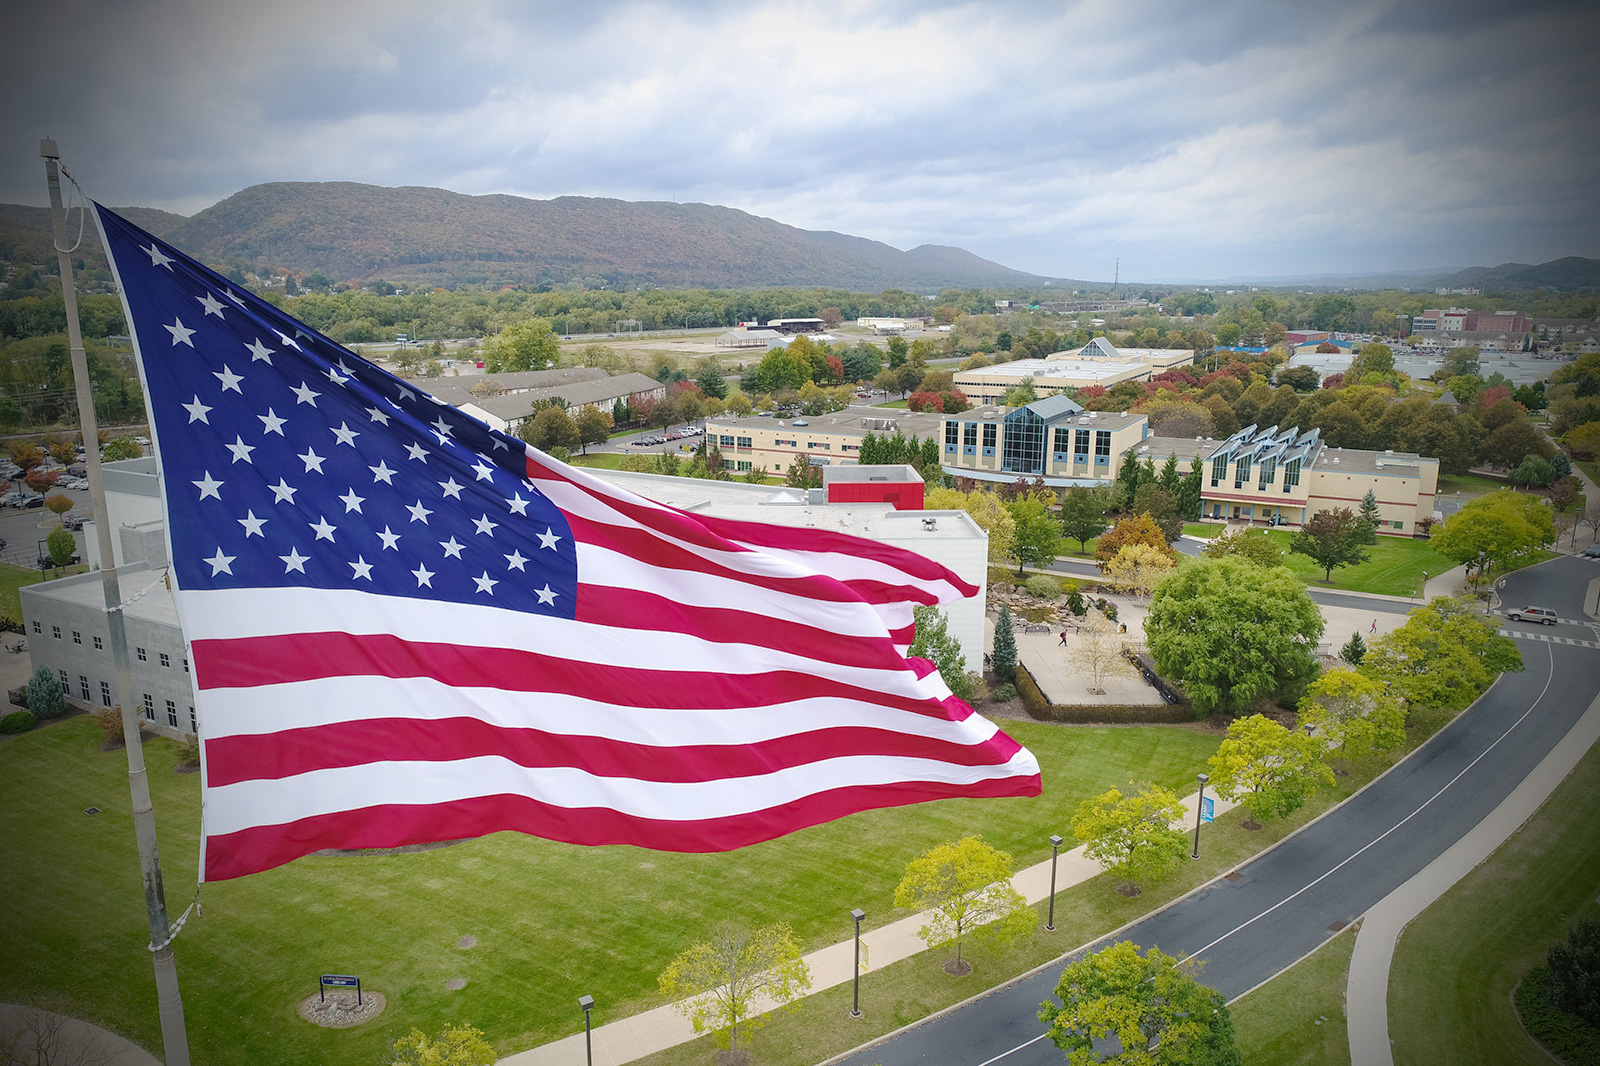 Aerial shot of American flag